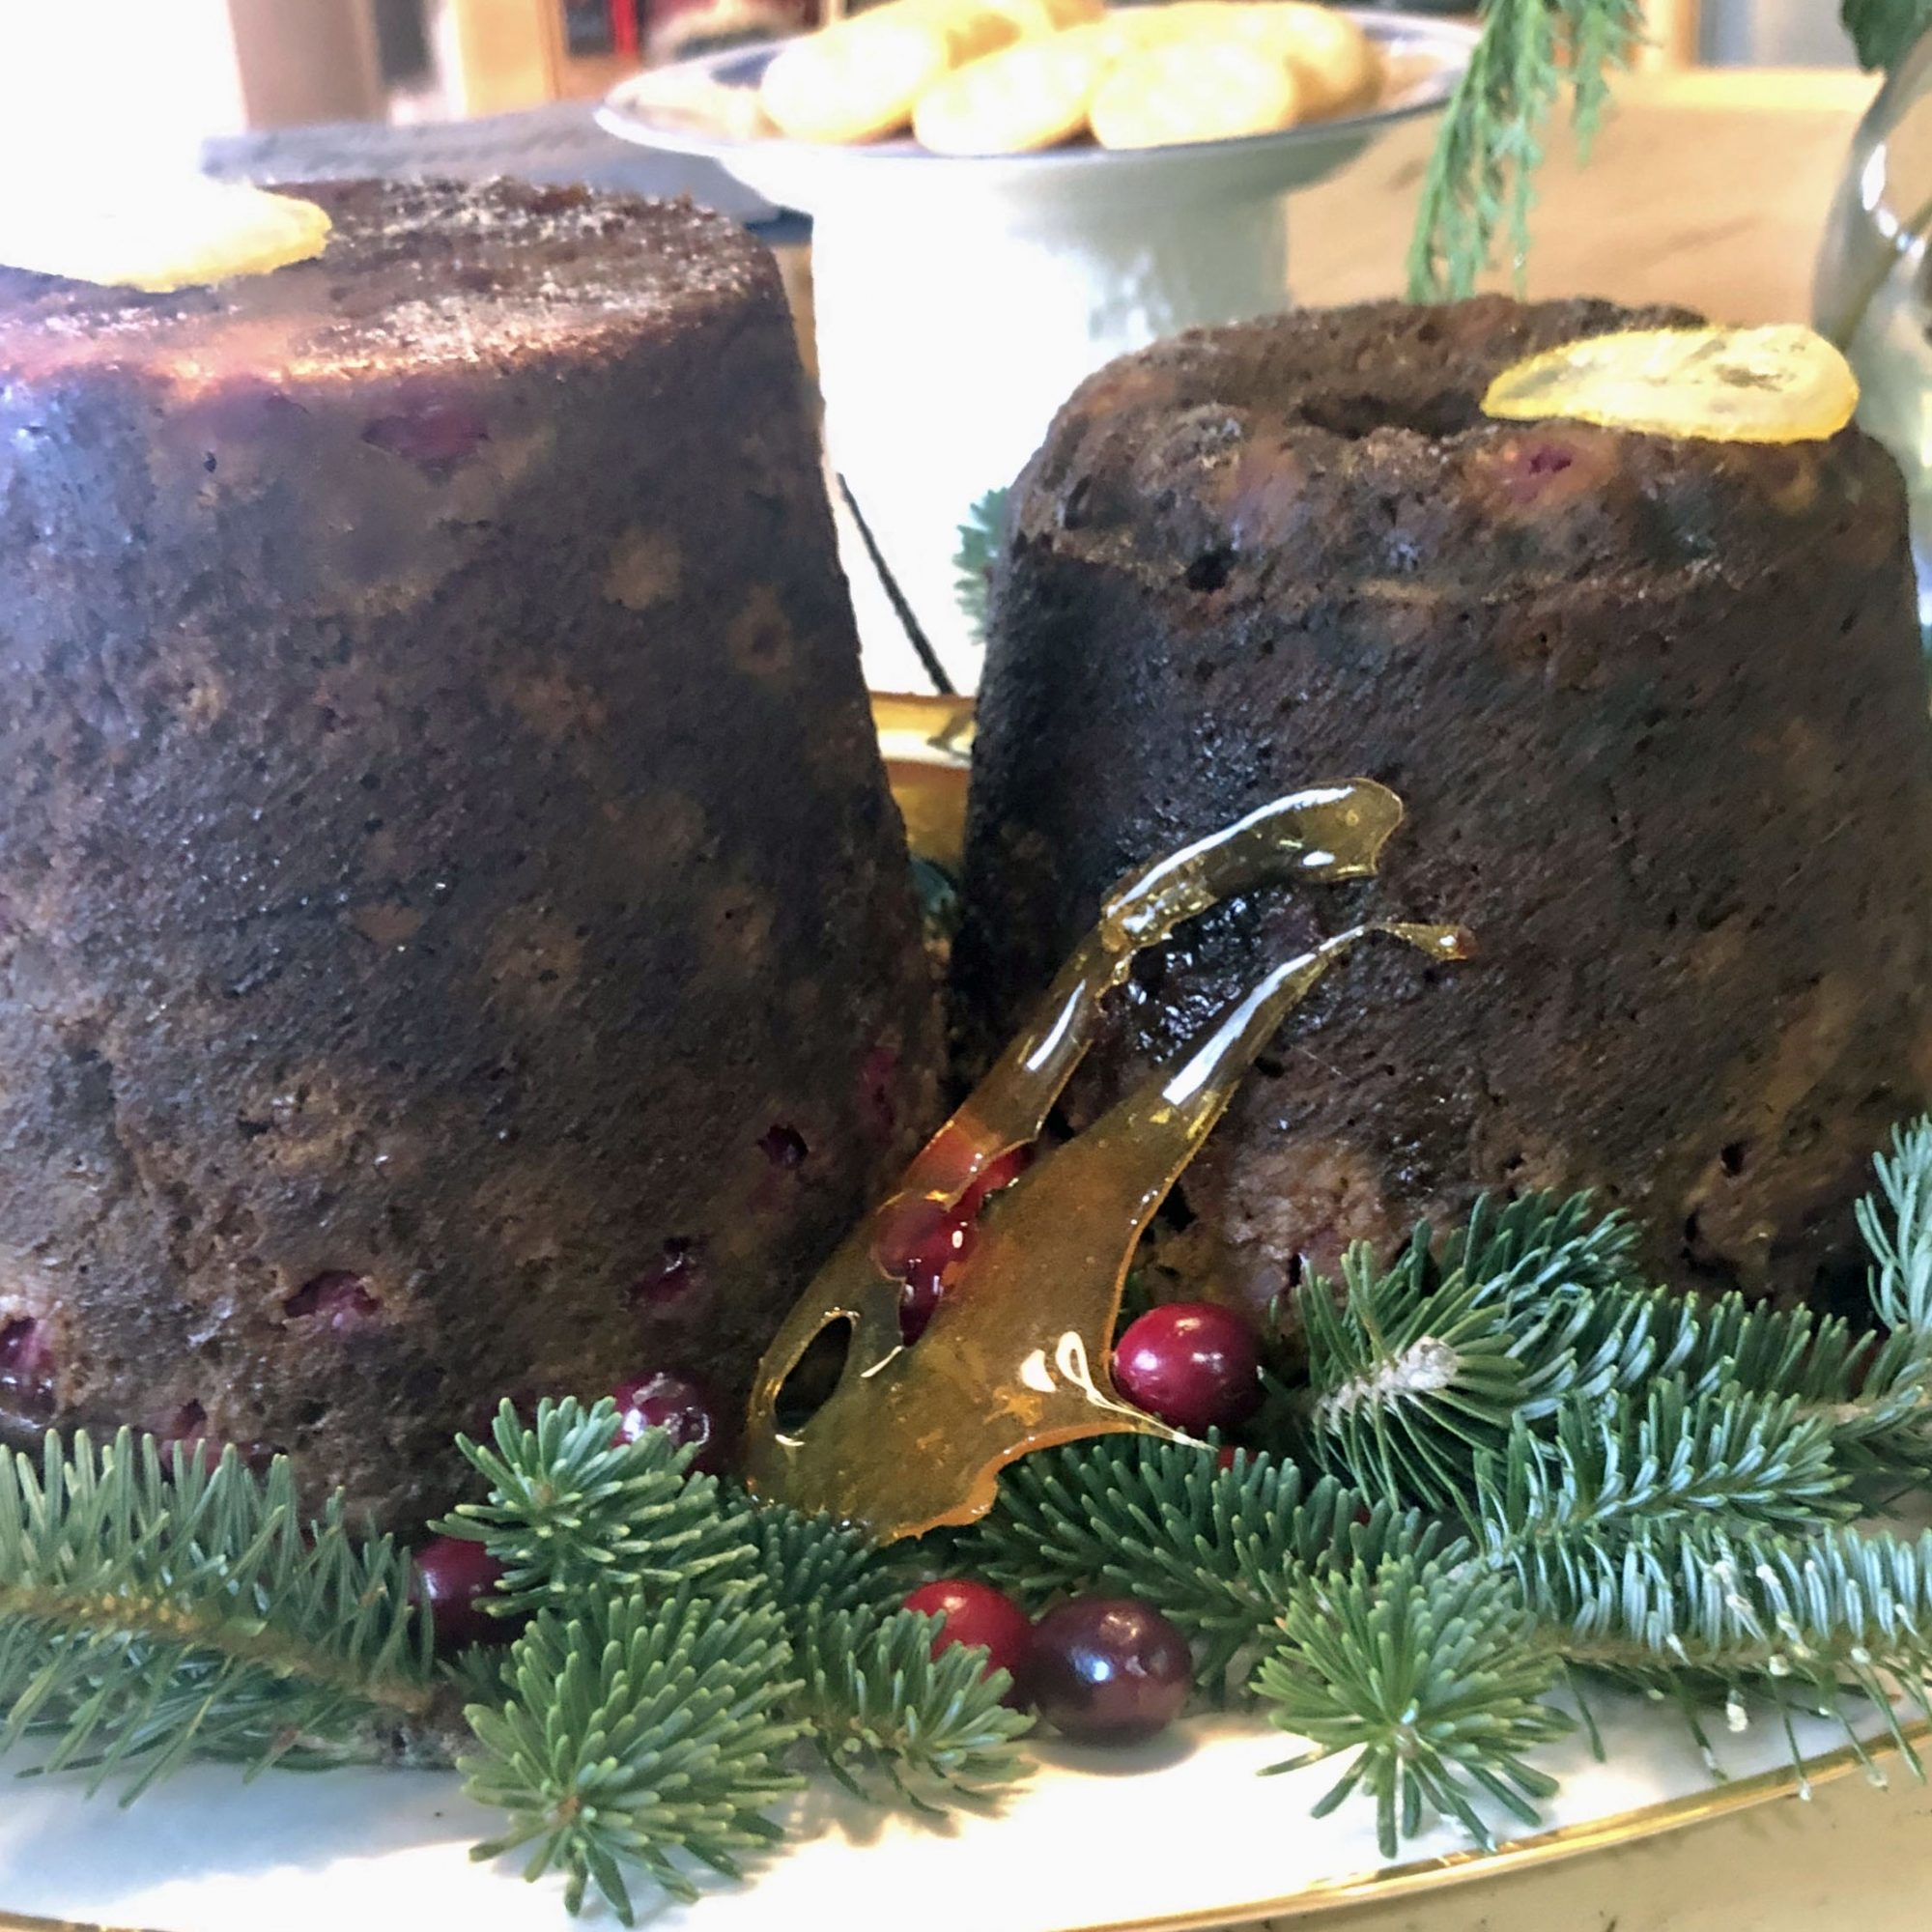 two Christmas puddings on a platter garnished with pine branches and decorative holly berries